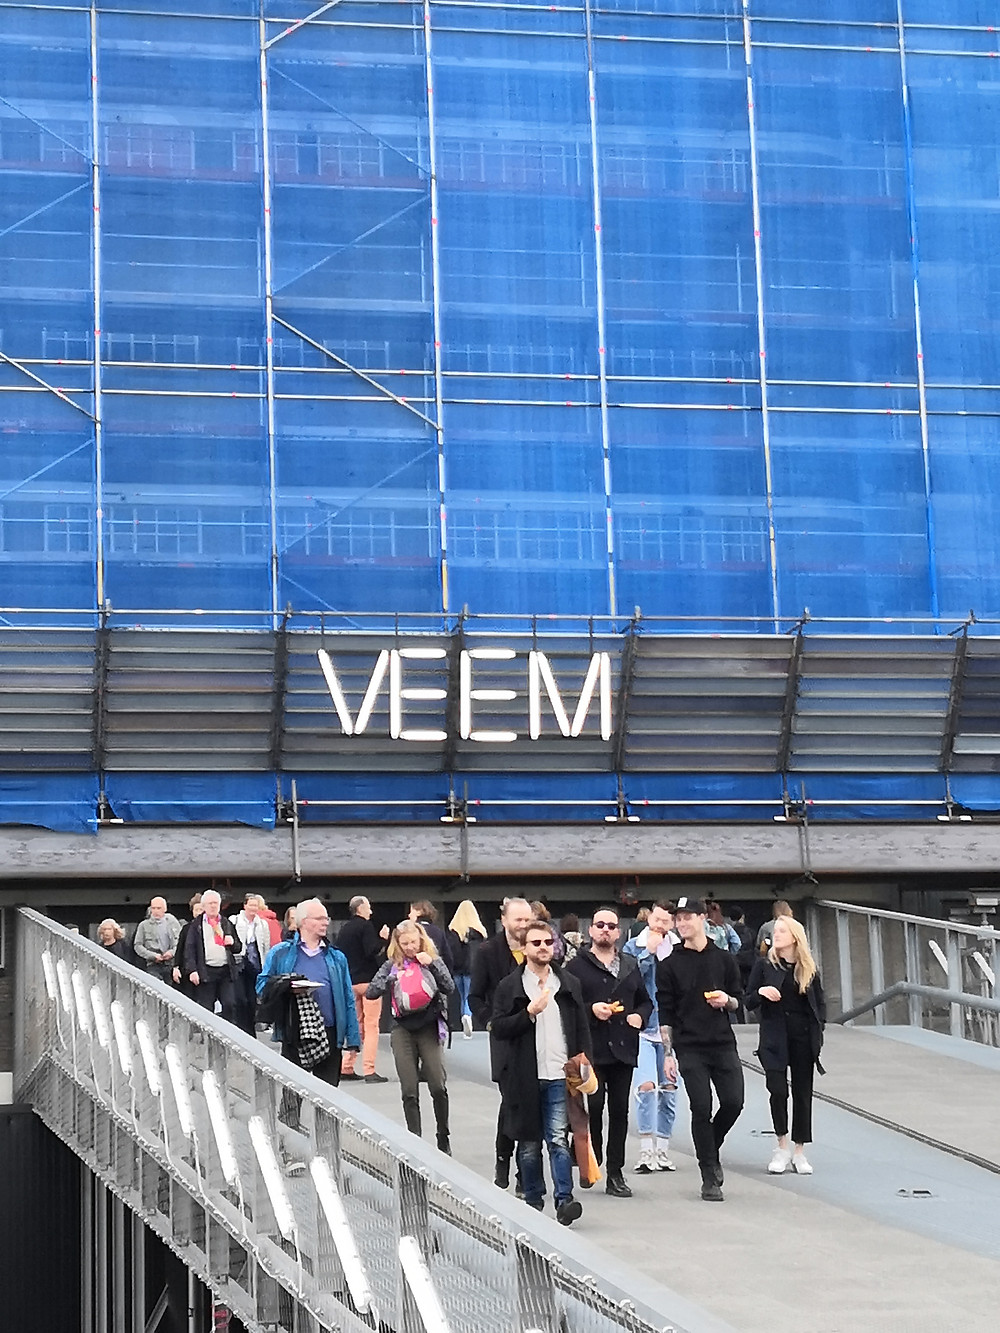 """People walking at the front of a large building mostly covered in blue material, with the text """"VEEM"""" over the entrance in lights."""